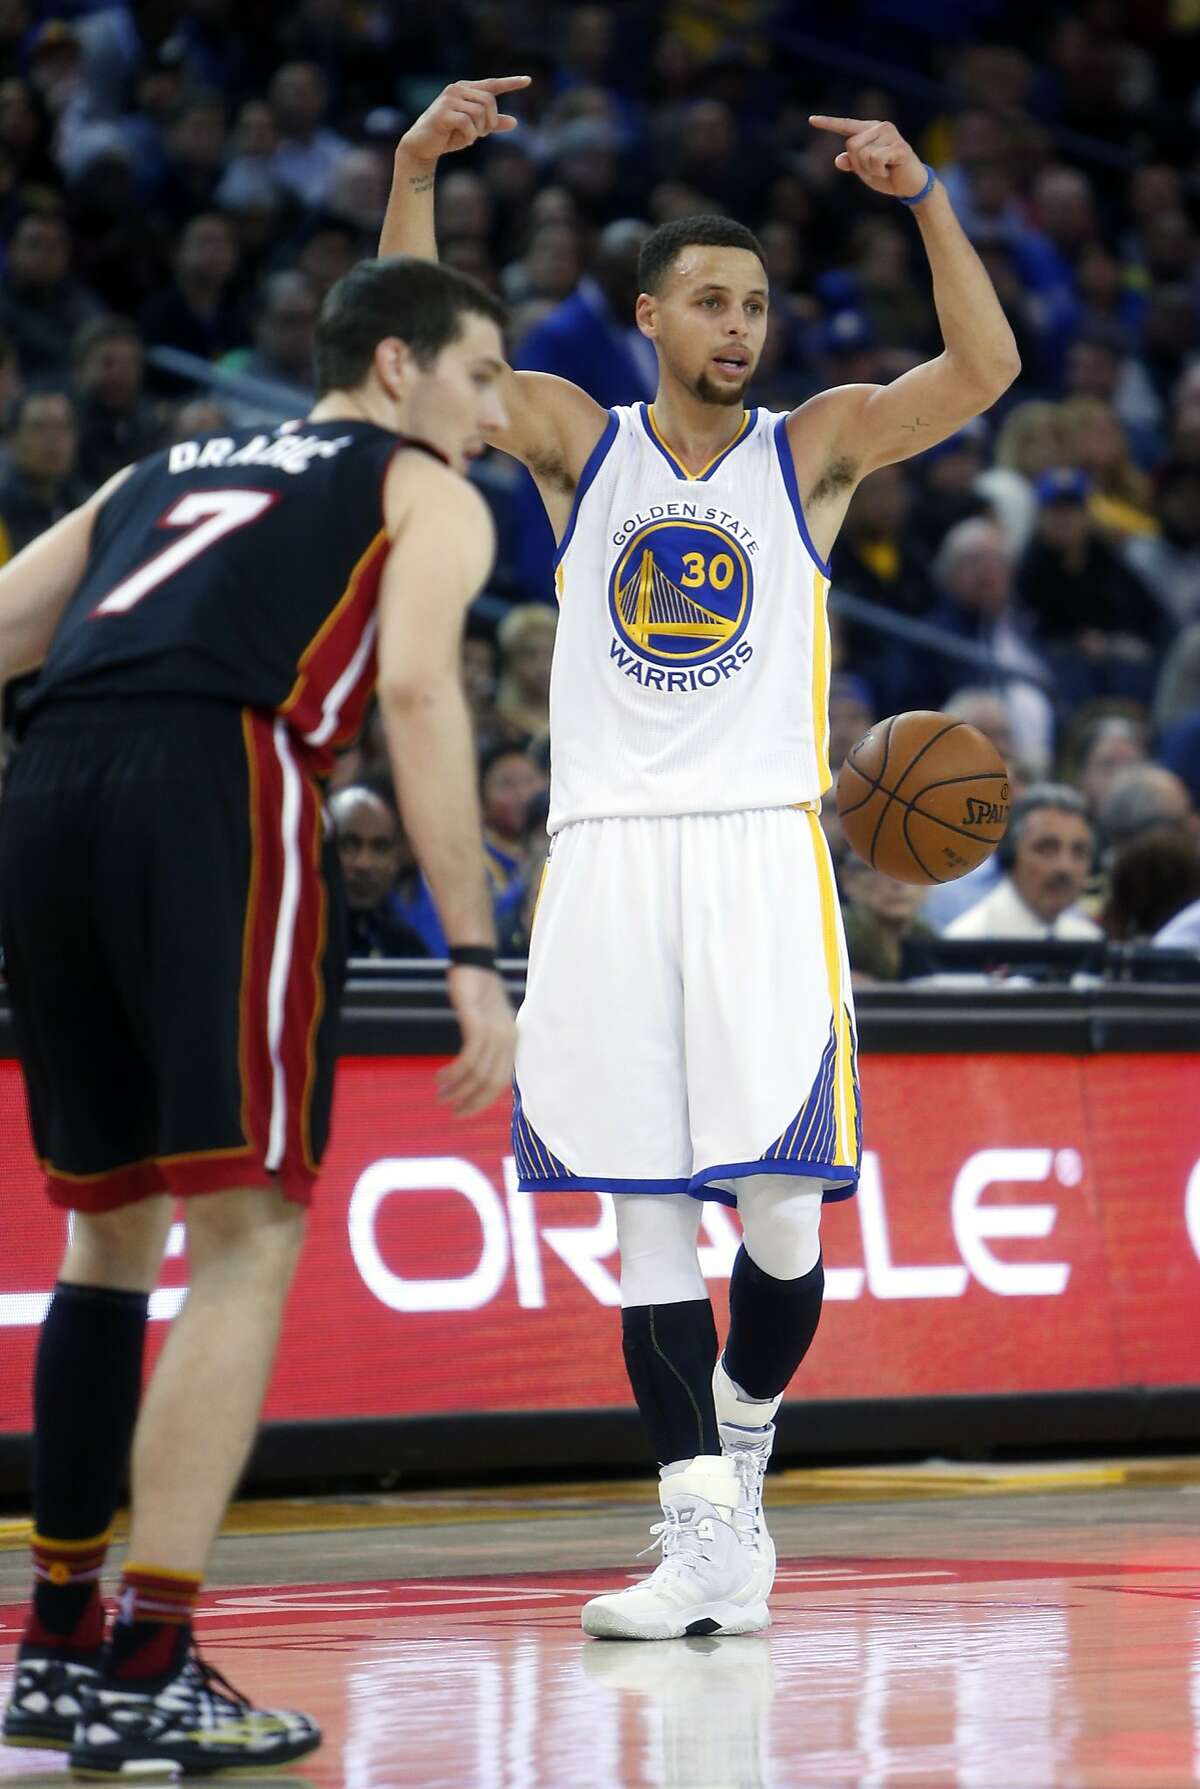 Golden State Warriors' Stephen Curry calls a play against Miami Heat's Goran Dragic in 2nd quarter during NBA game at Oracle Arena in Oakland, Calif., on Monday, January 11, 2016.